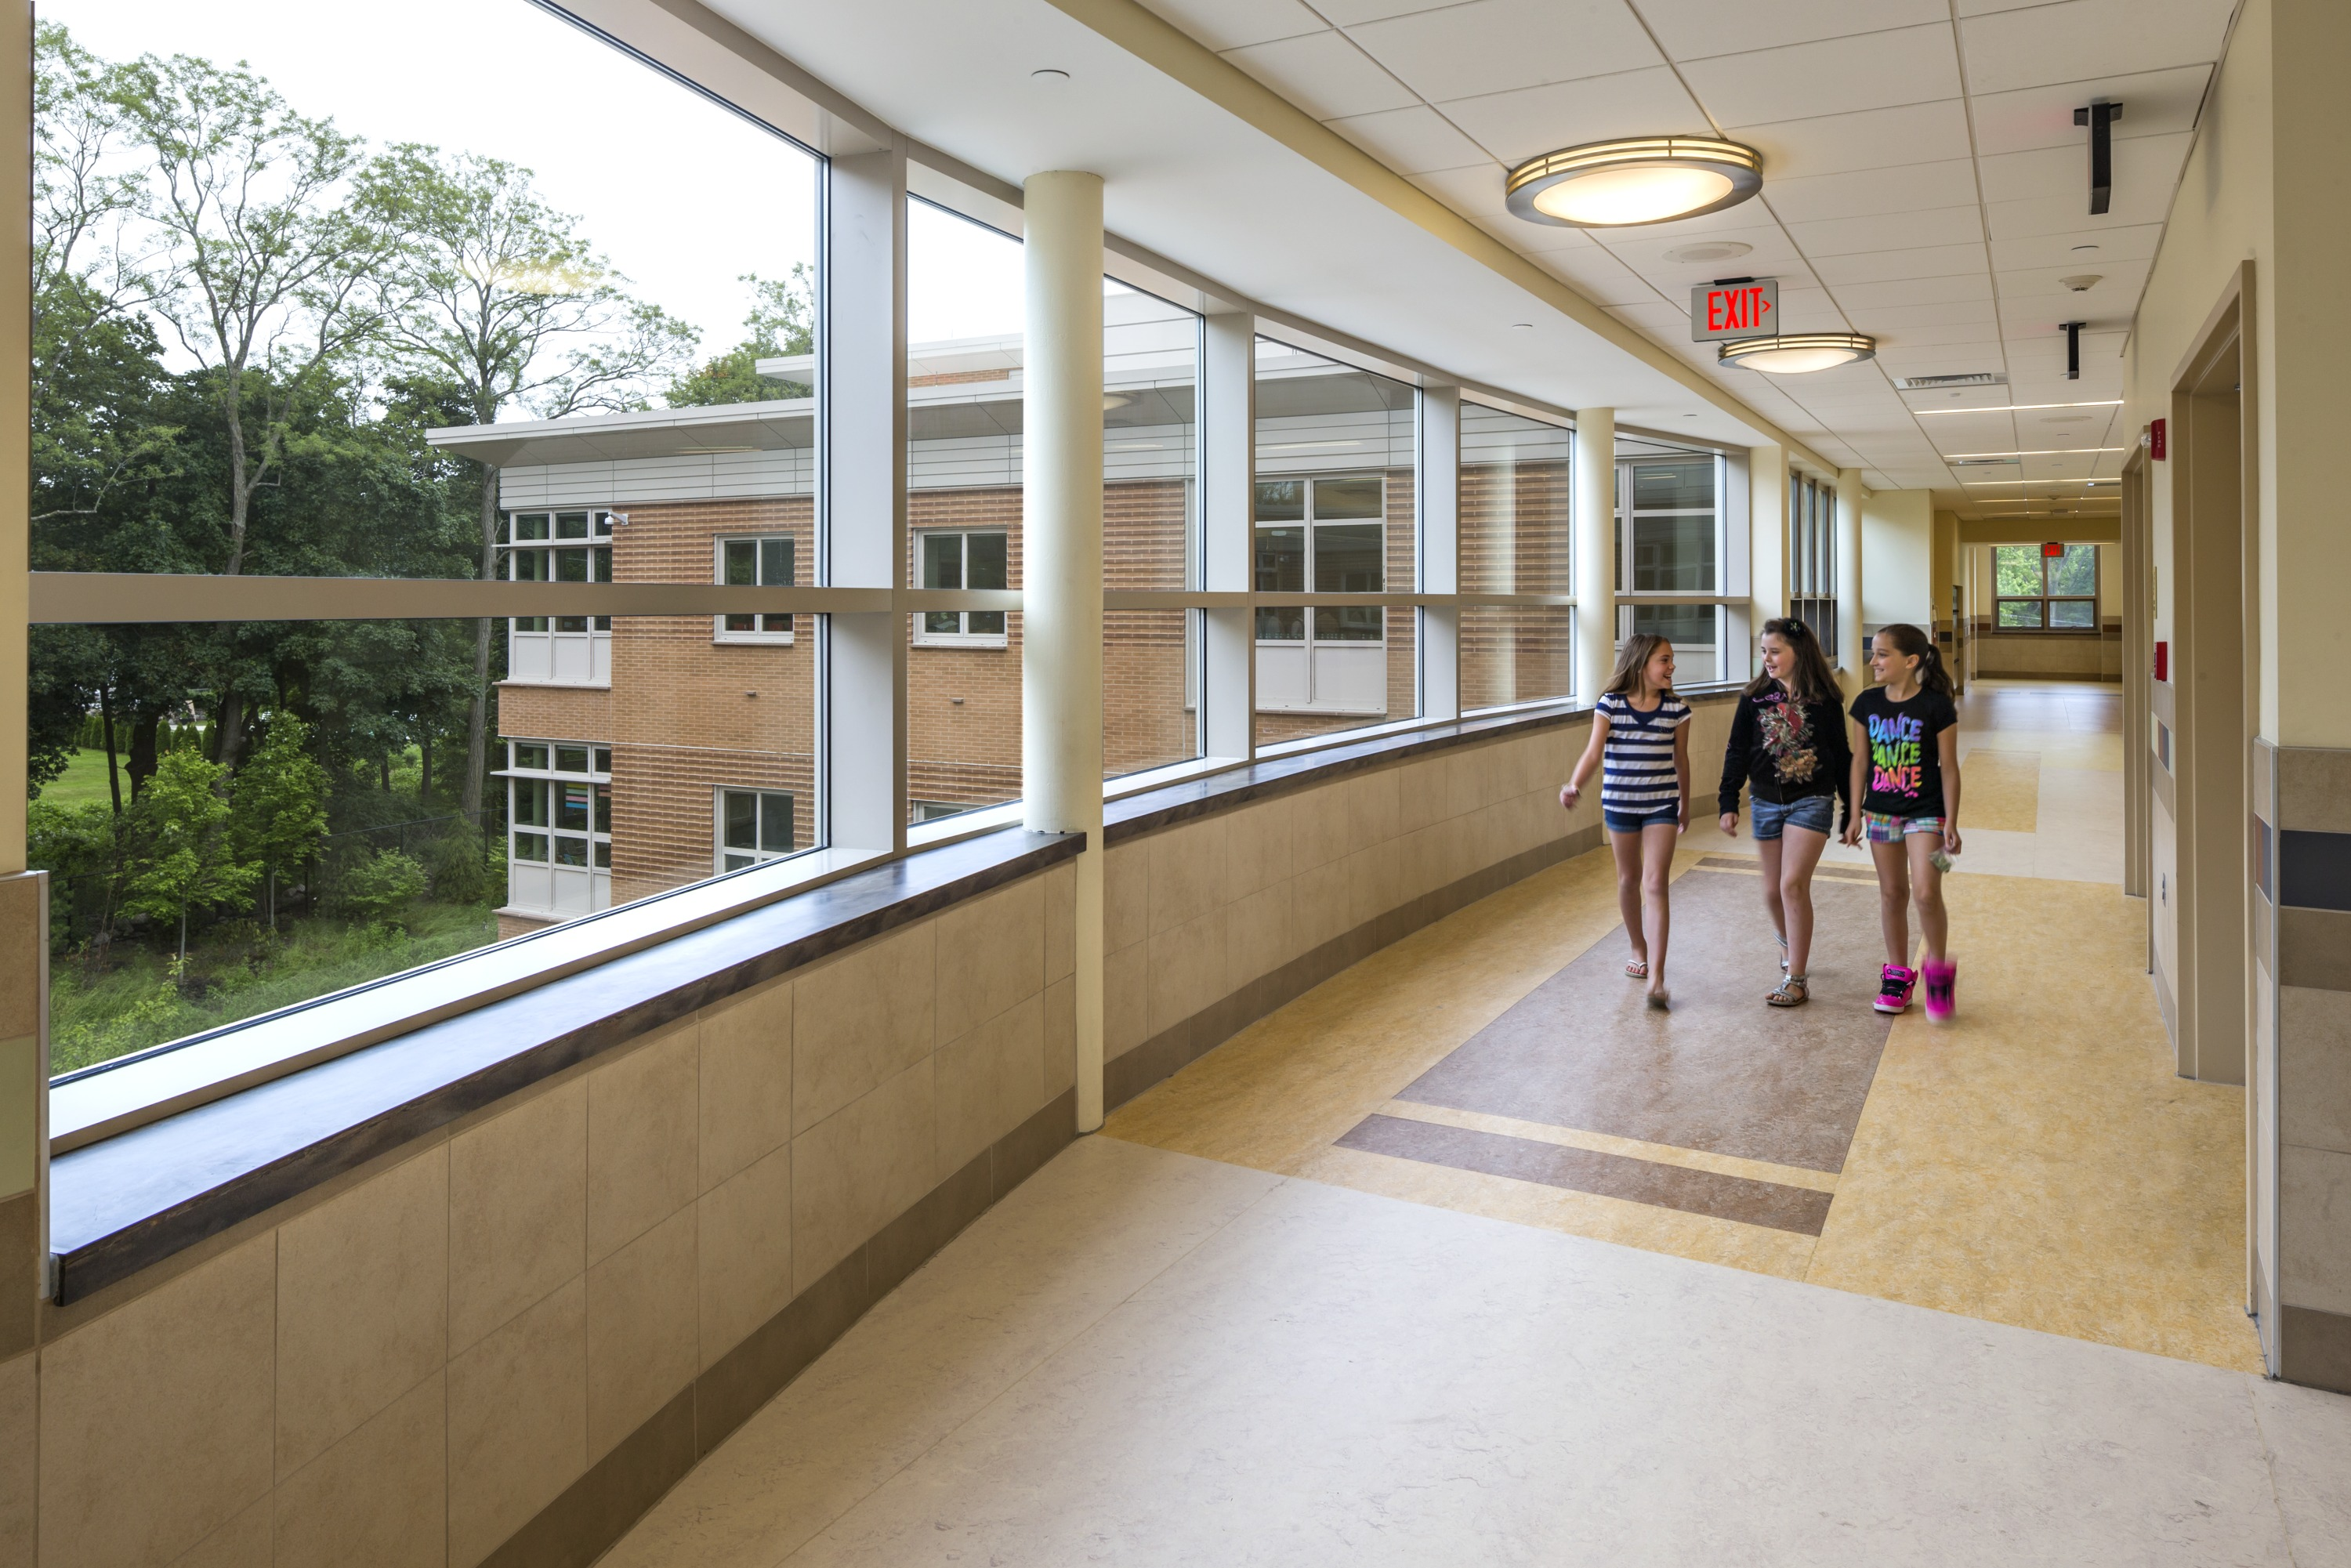 Curved Wall design to support special education needs